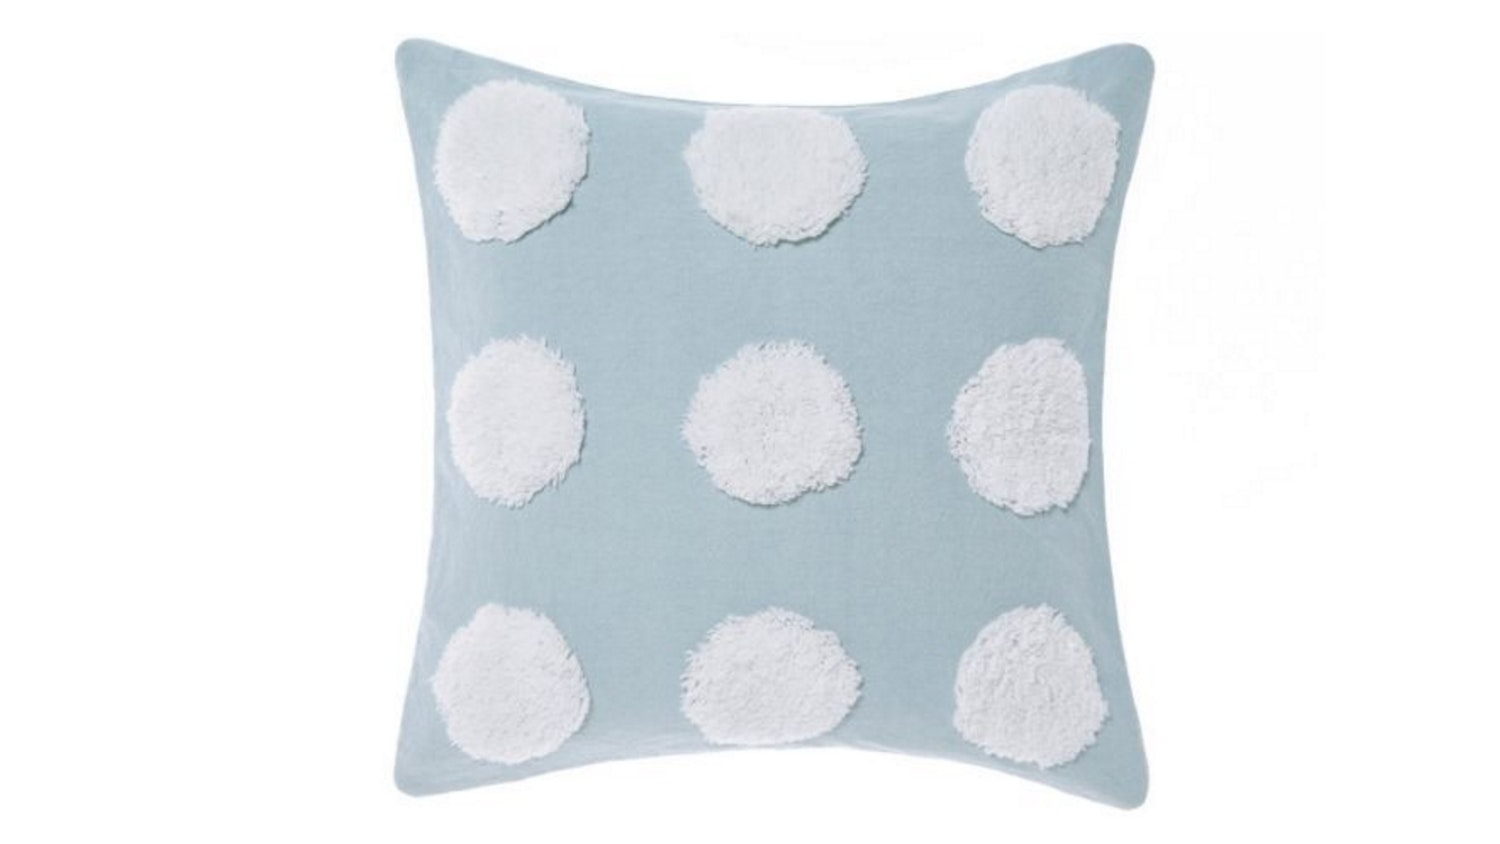 Linen House Haze Cushion - Blue & White